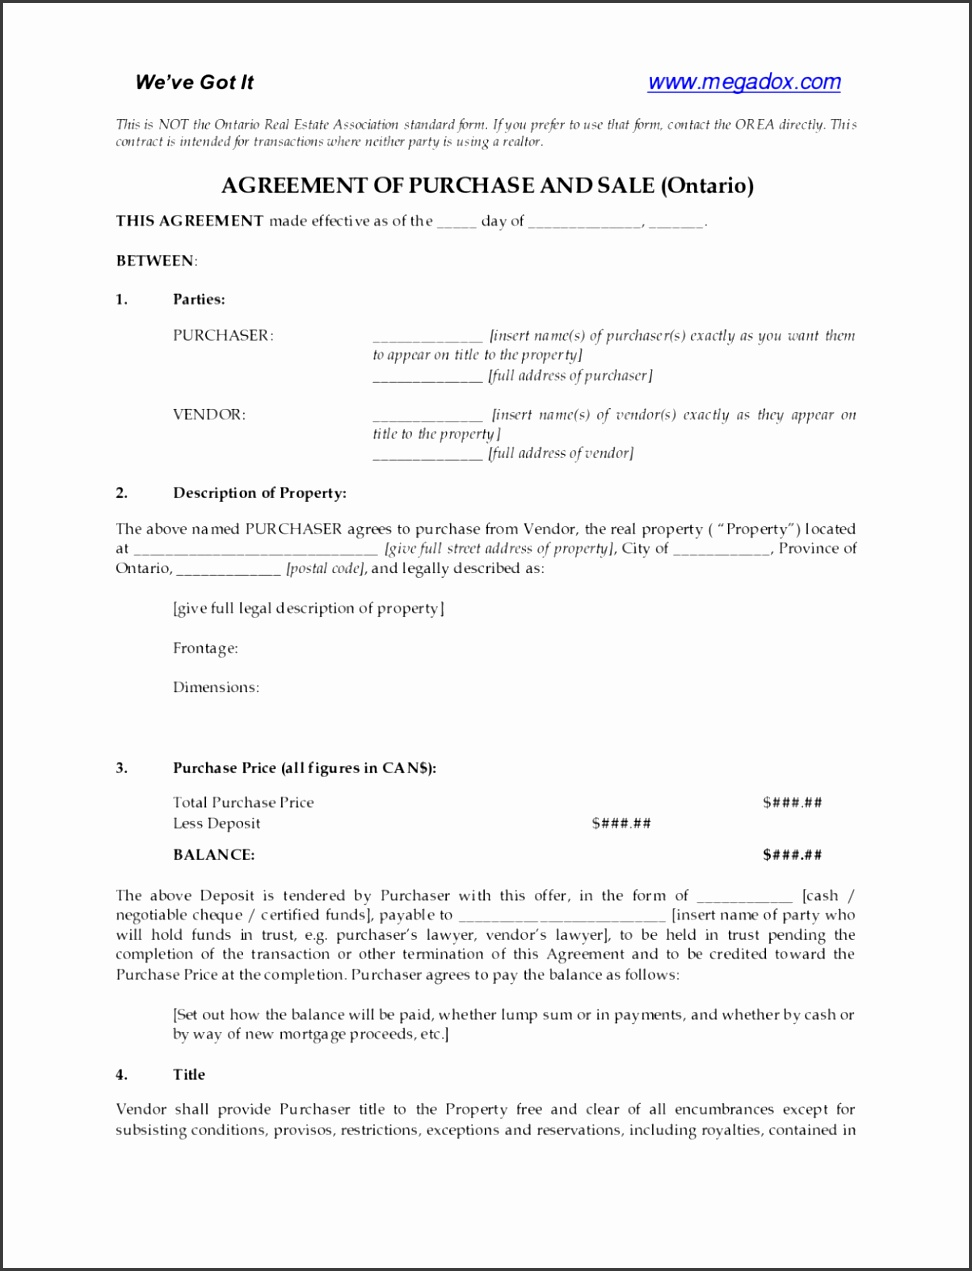 Rentalnt Form Free Printable Receipt Sample Letter Pdf Template For Selling Car Divorce In Spanish Employee Payment Between Two Parties 1048x1355 Loan